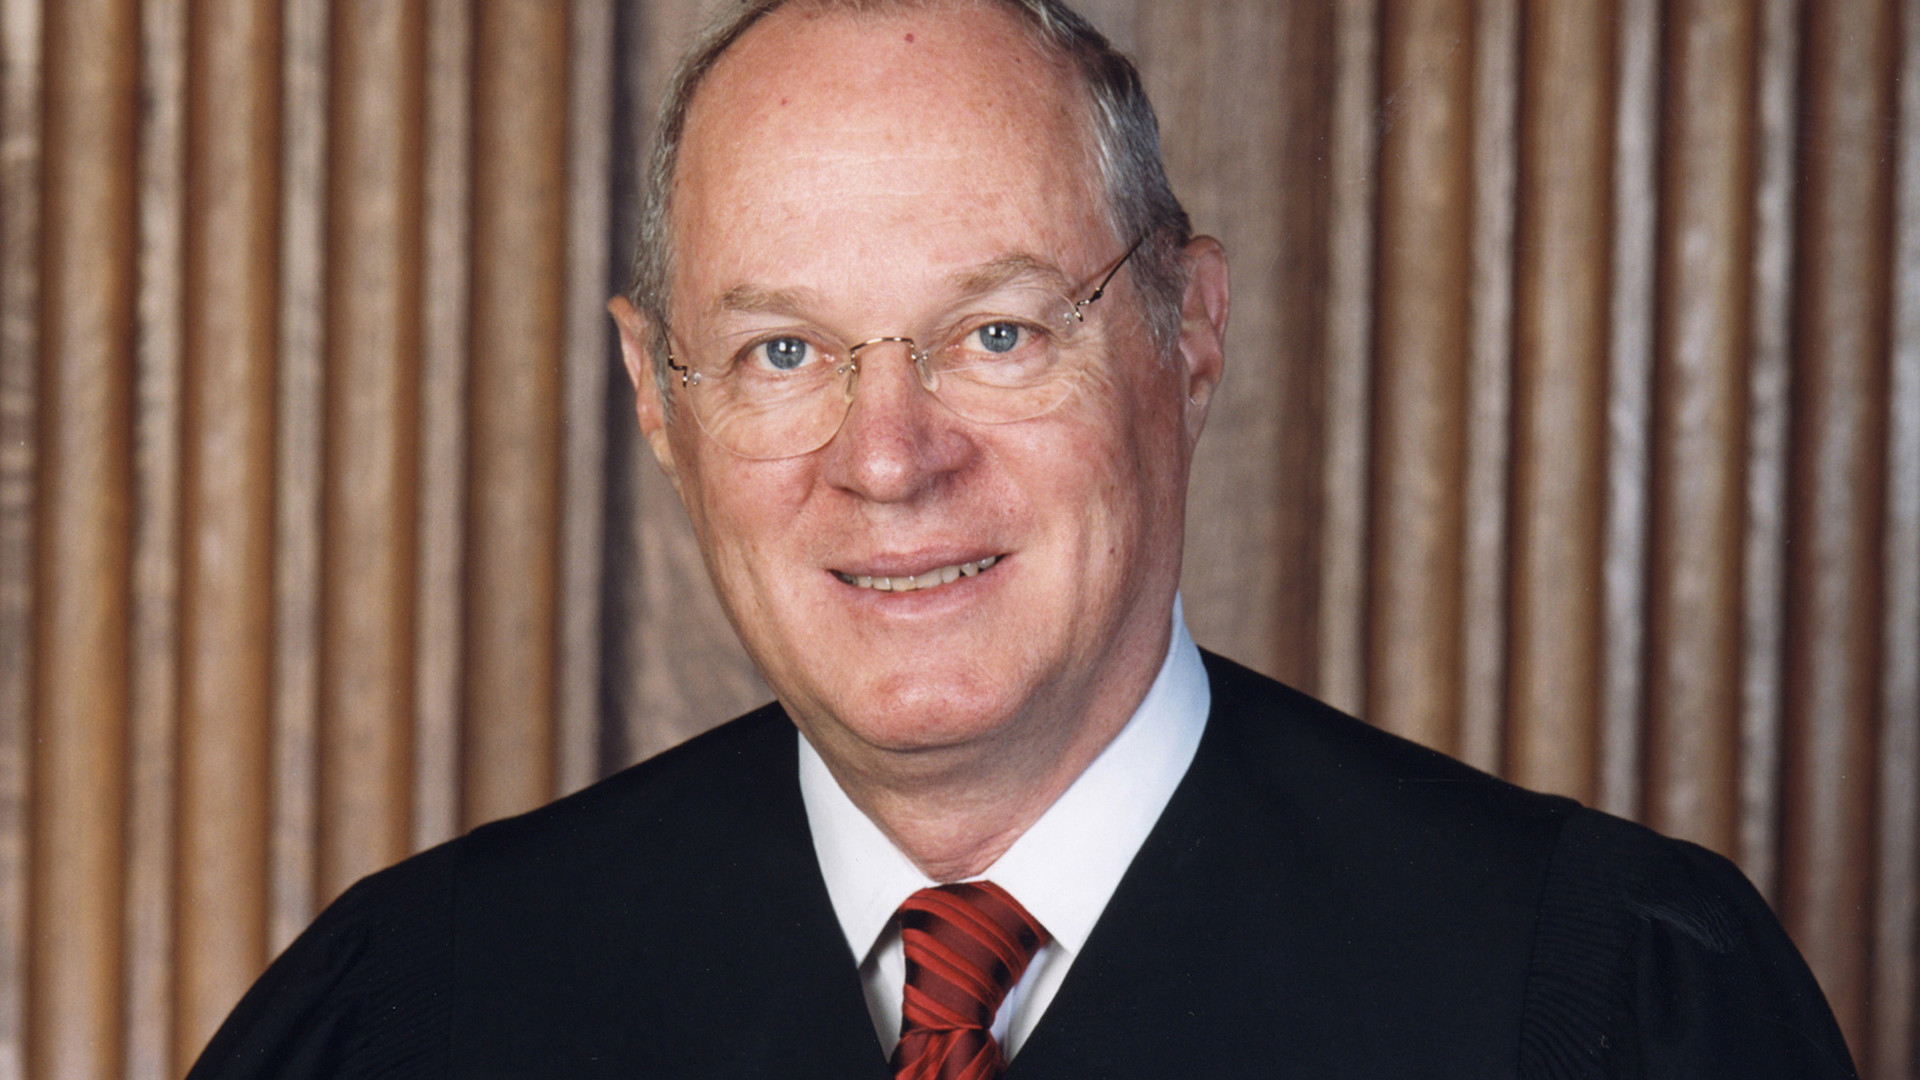 The Retirement of Justice Anthony Kennedy